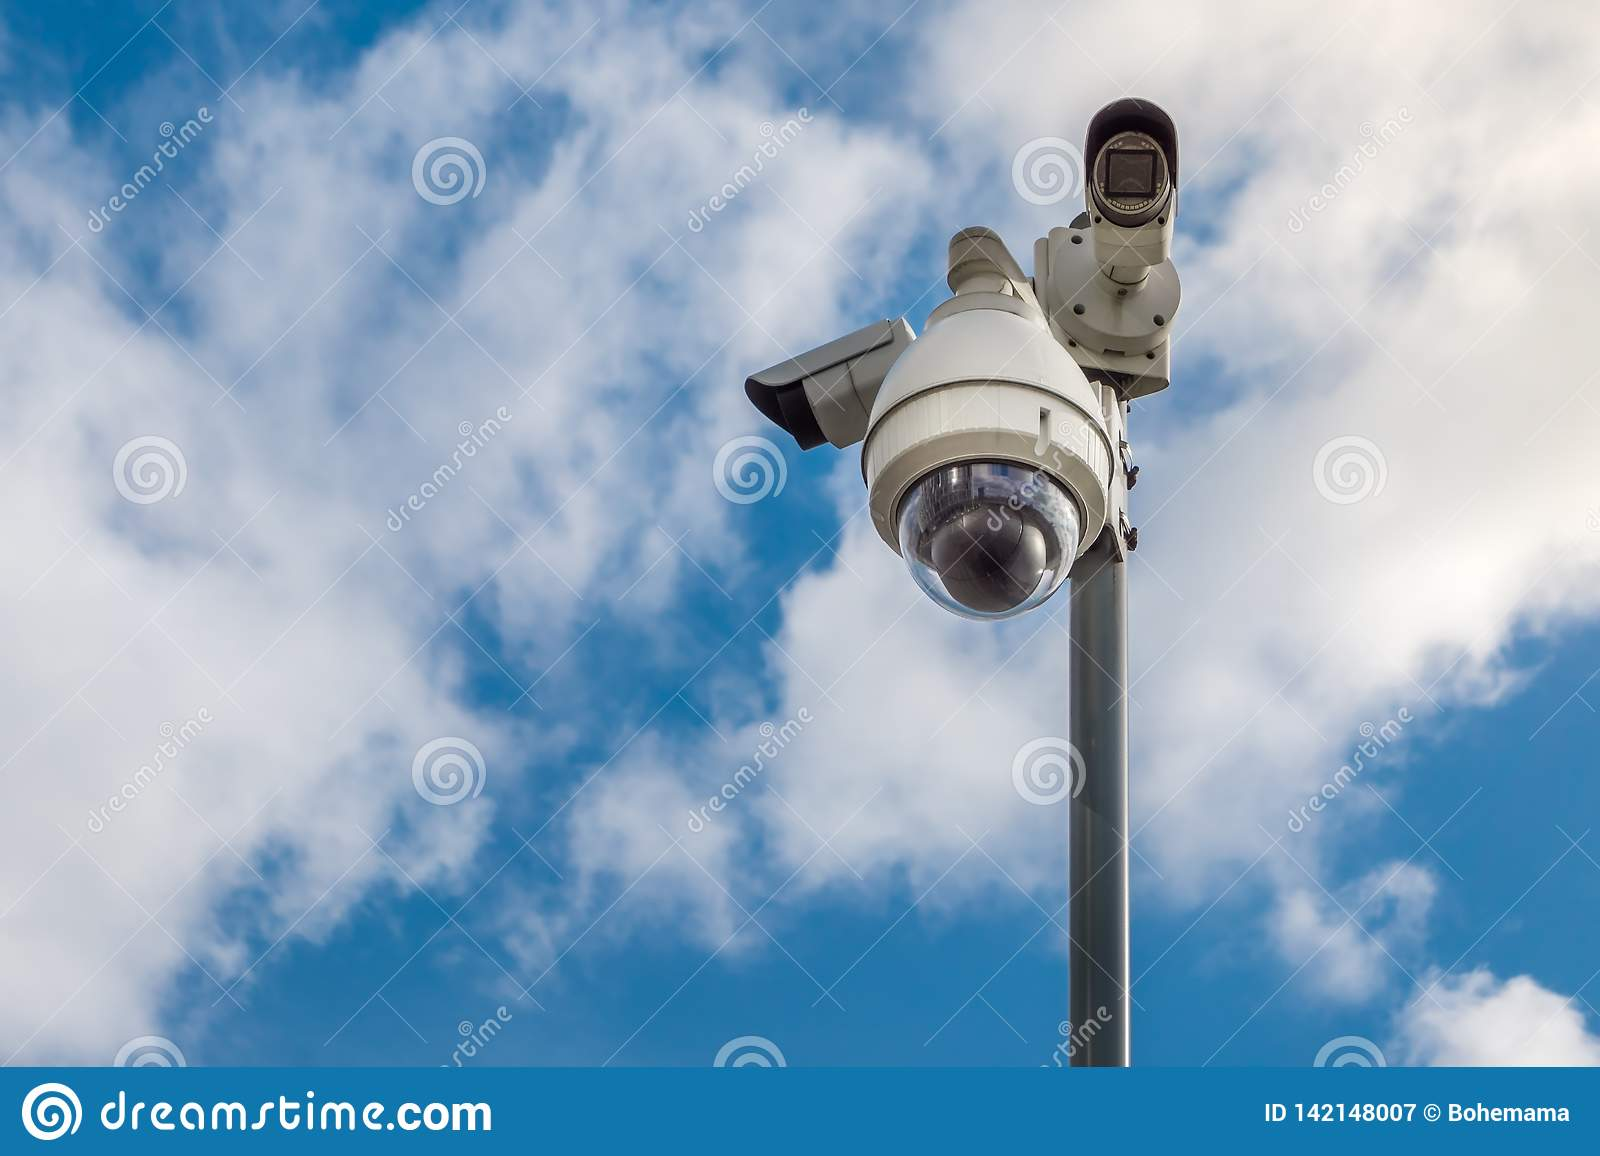 CCTV security cameras on pole on blue sky with white clouds background